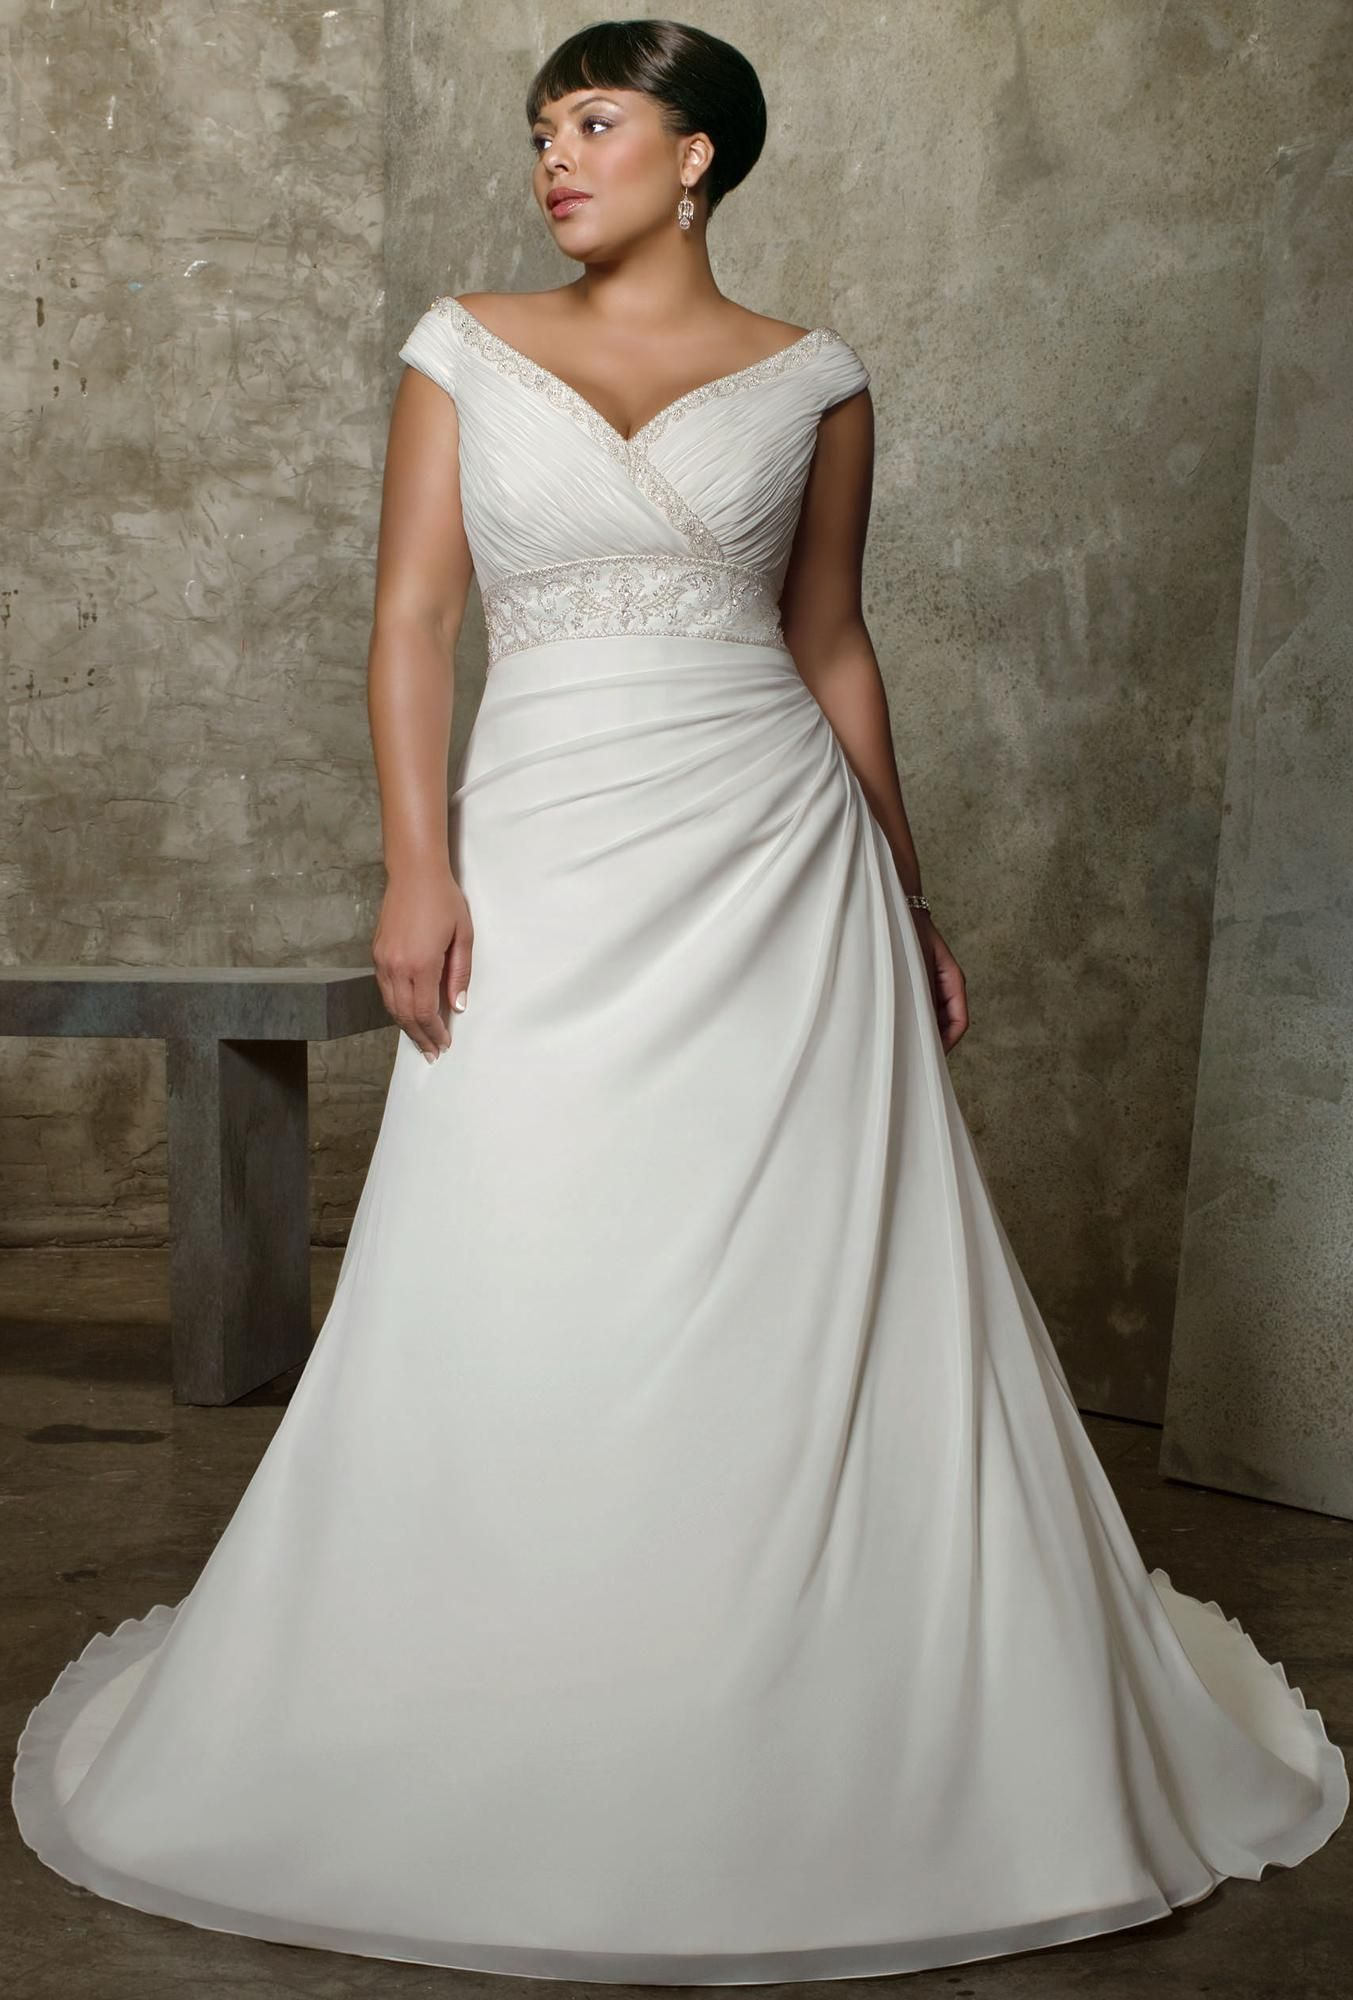 Pin By Brilliantblogger1 Com On Wedding Dress For Plus Seize Women Wedding Dress Big Bust Plus Size Wedding Gowns Wedding Dresses